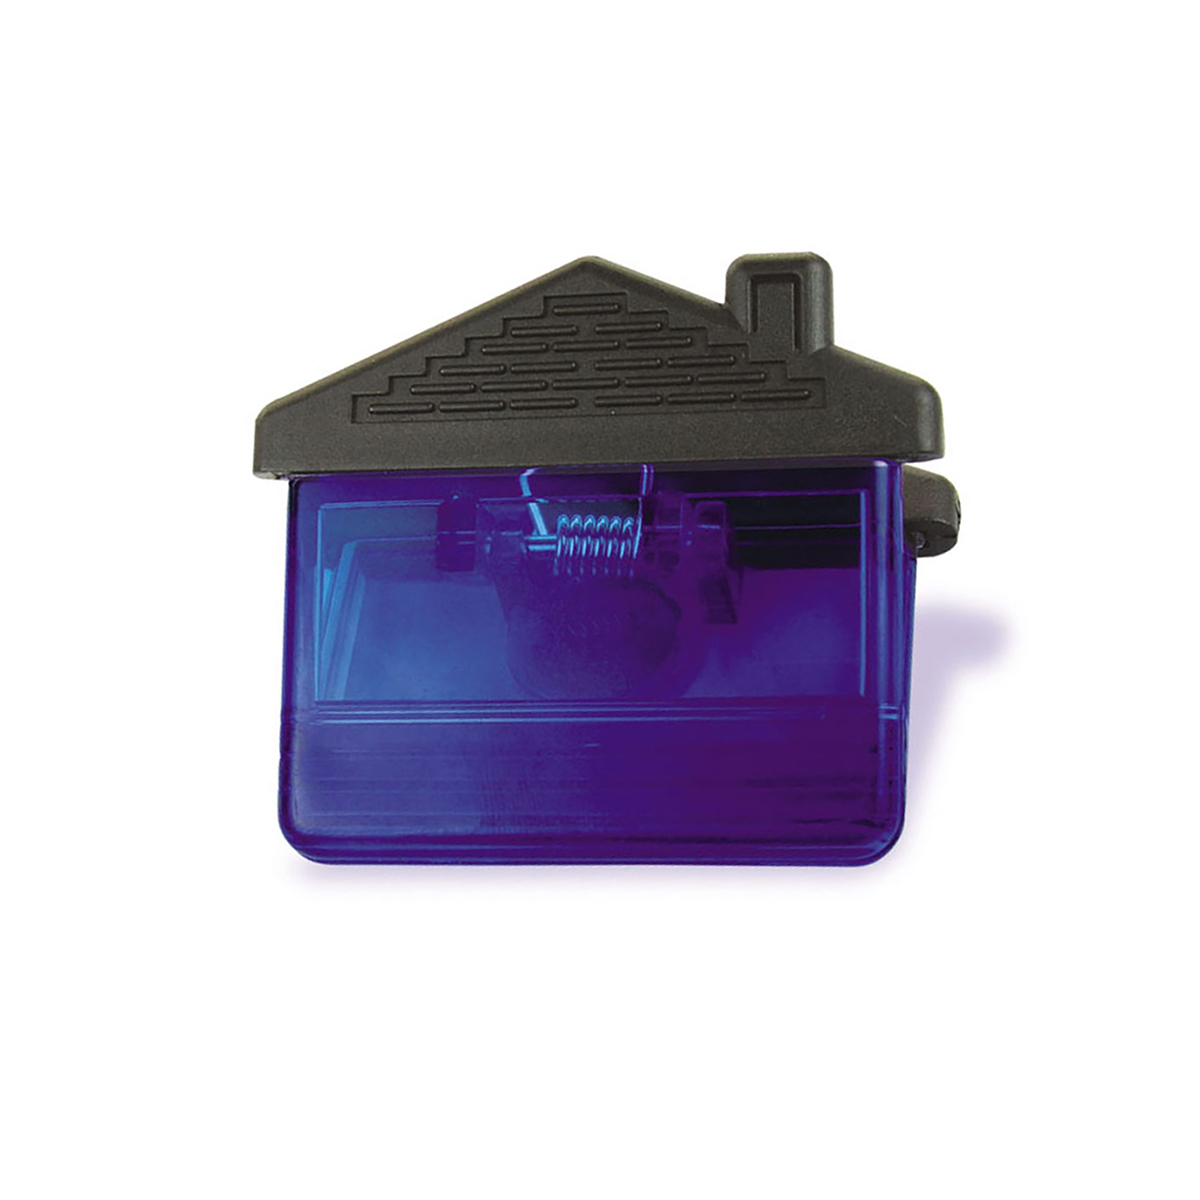 Translucent Blue House Magnetic Clip